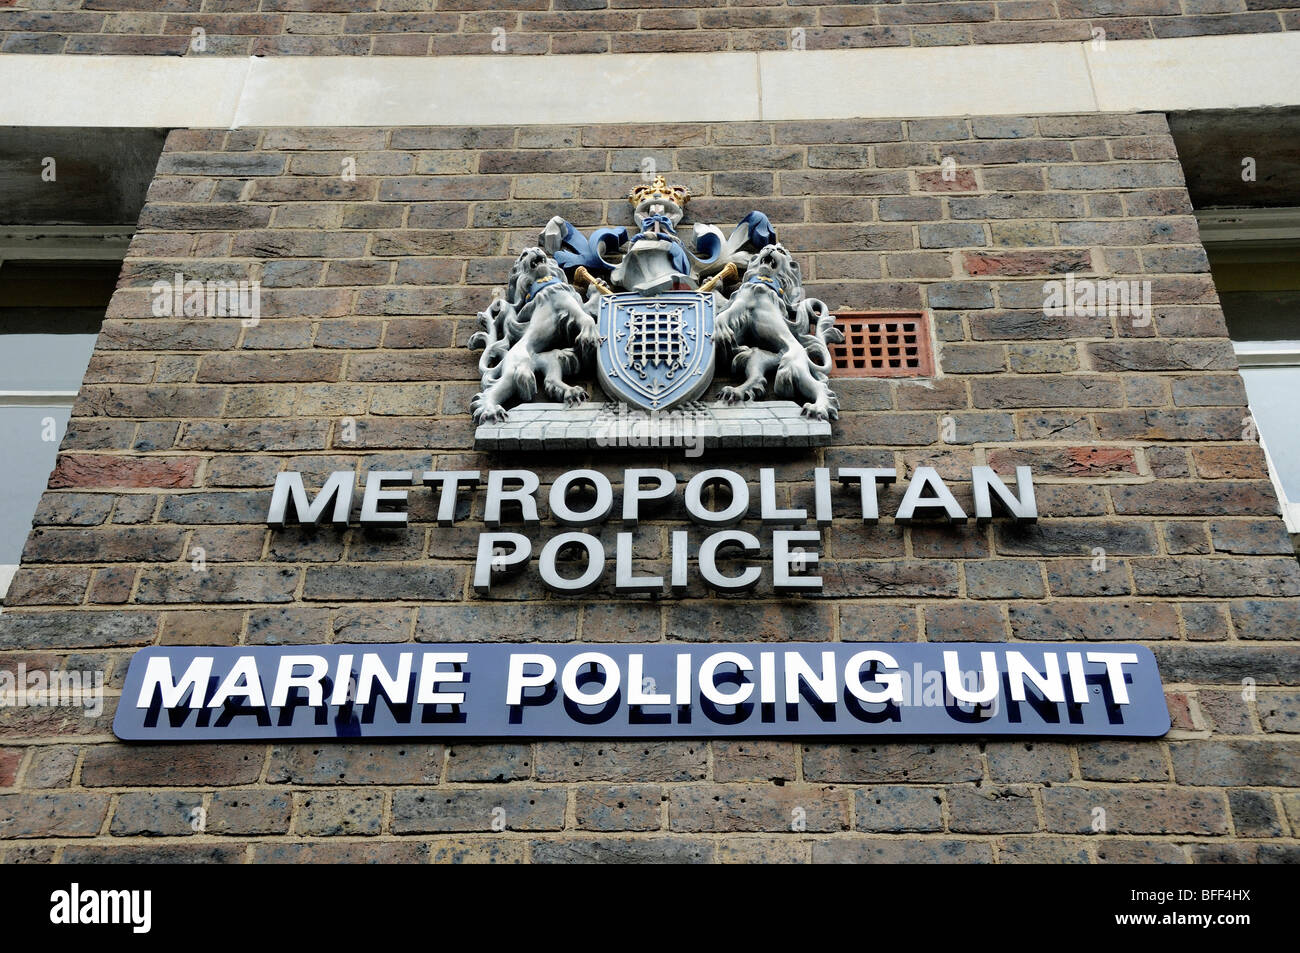 Metropolitan Police, Marine Policing Unit sign Wapping London England UK - Stock Image